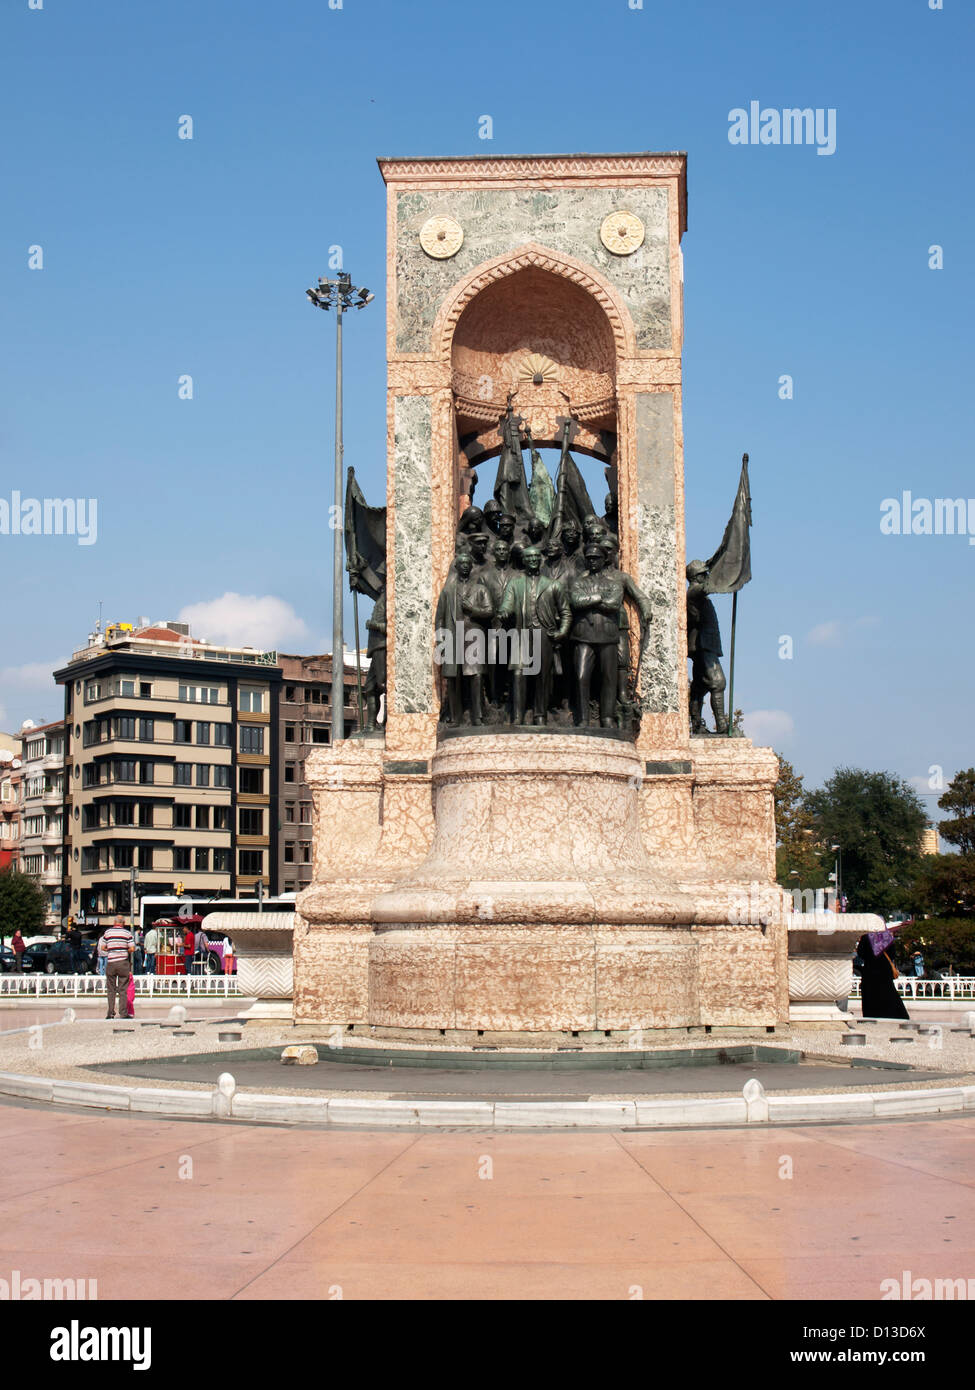 the Monument of the Republic in the Taksim square meydani in Istanbul Turkey - Stock Image